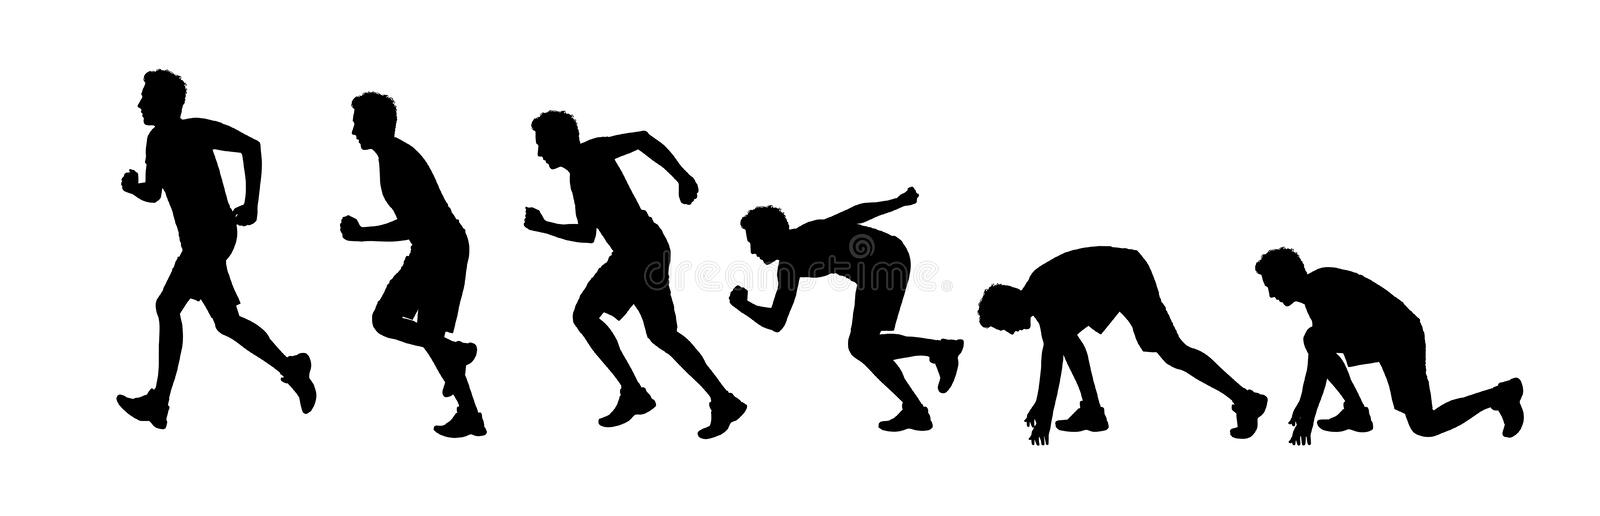 Silhouettes of a man starting running. Silhouettes of a young man starting running a marathon royalty free illustration